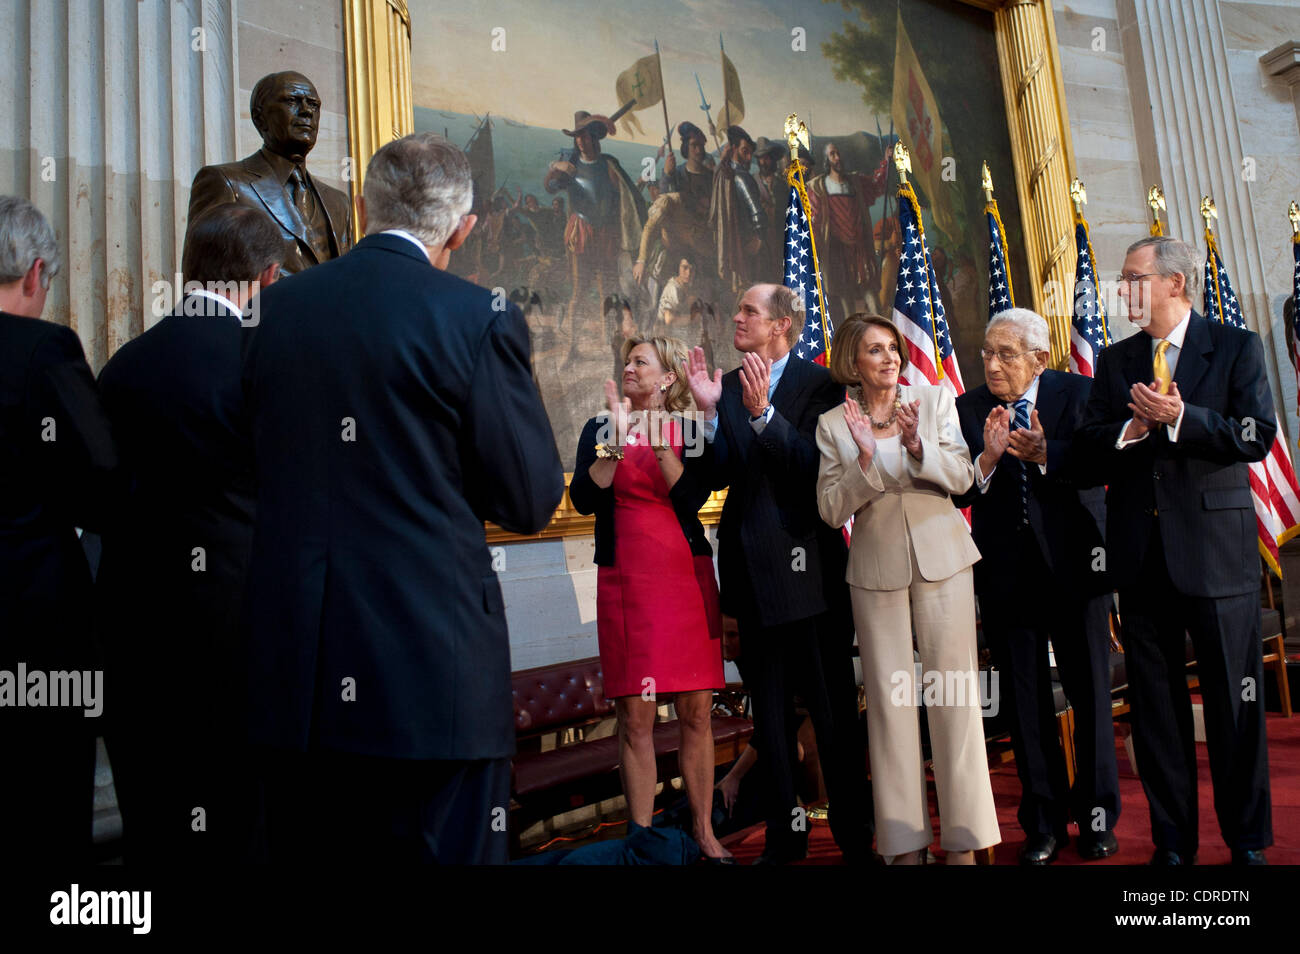 May 3, 2011 - Washington, District of Columbia, U.S. - STEVEN FORD and SUSAN FORD BALES (center), son and daugher - Stock Image